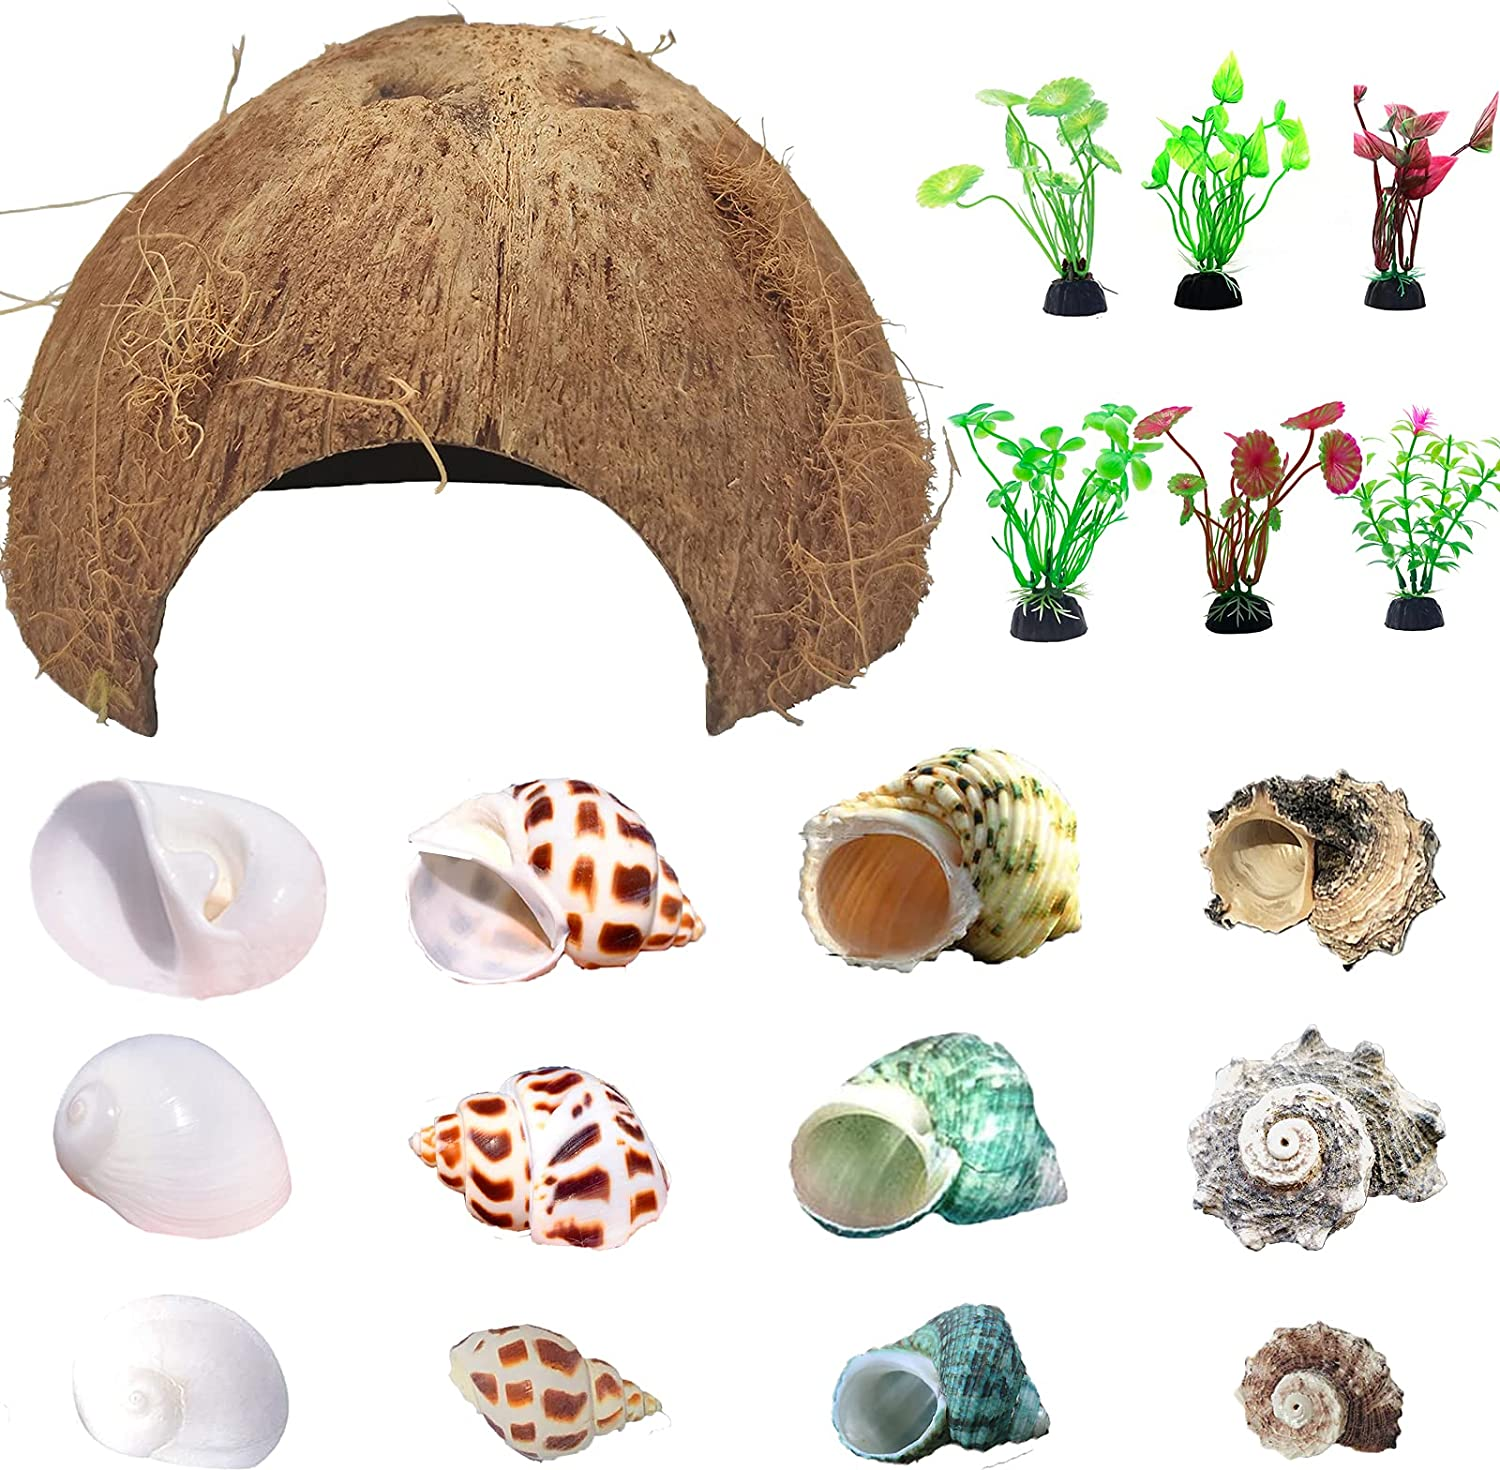 Hermit Max 67% OFF Crab Shells Natural Coconut Plants Animer and price revision D Artificial Shell Hut